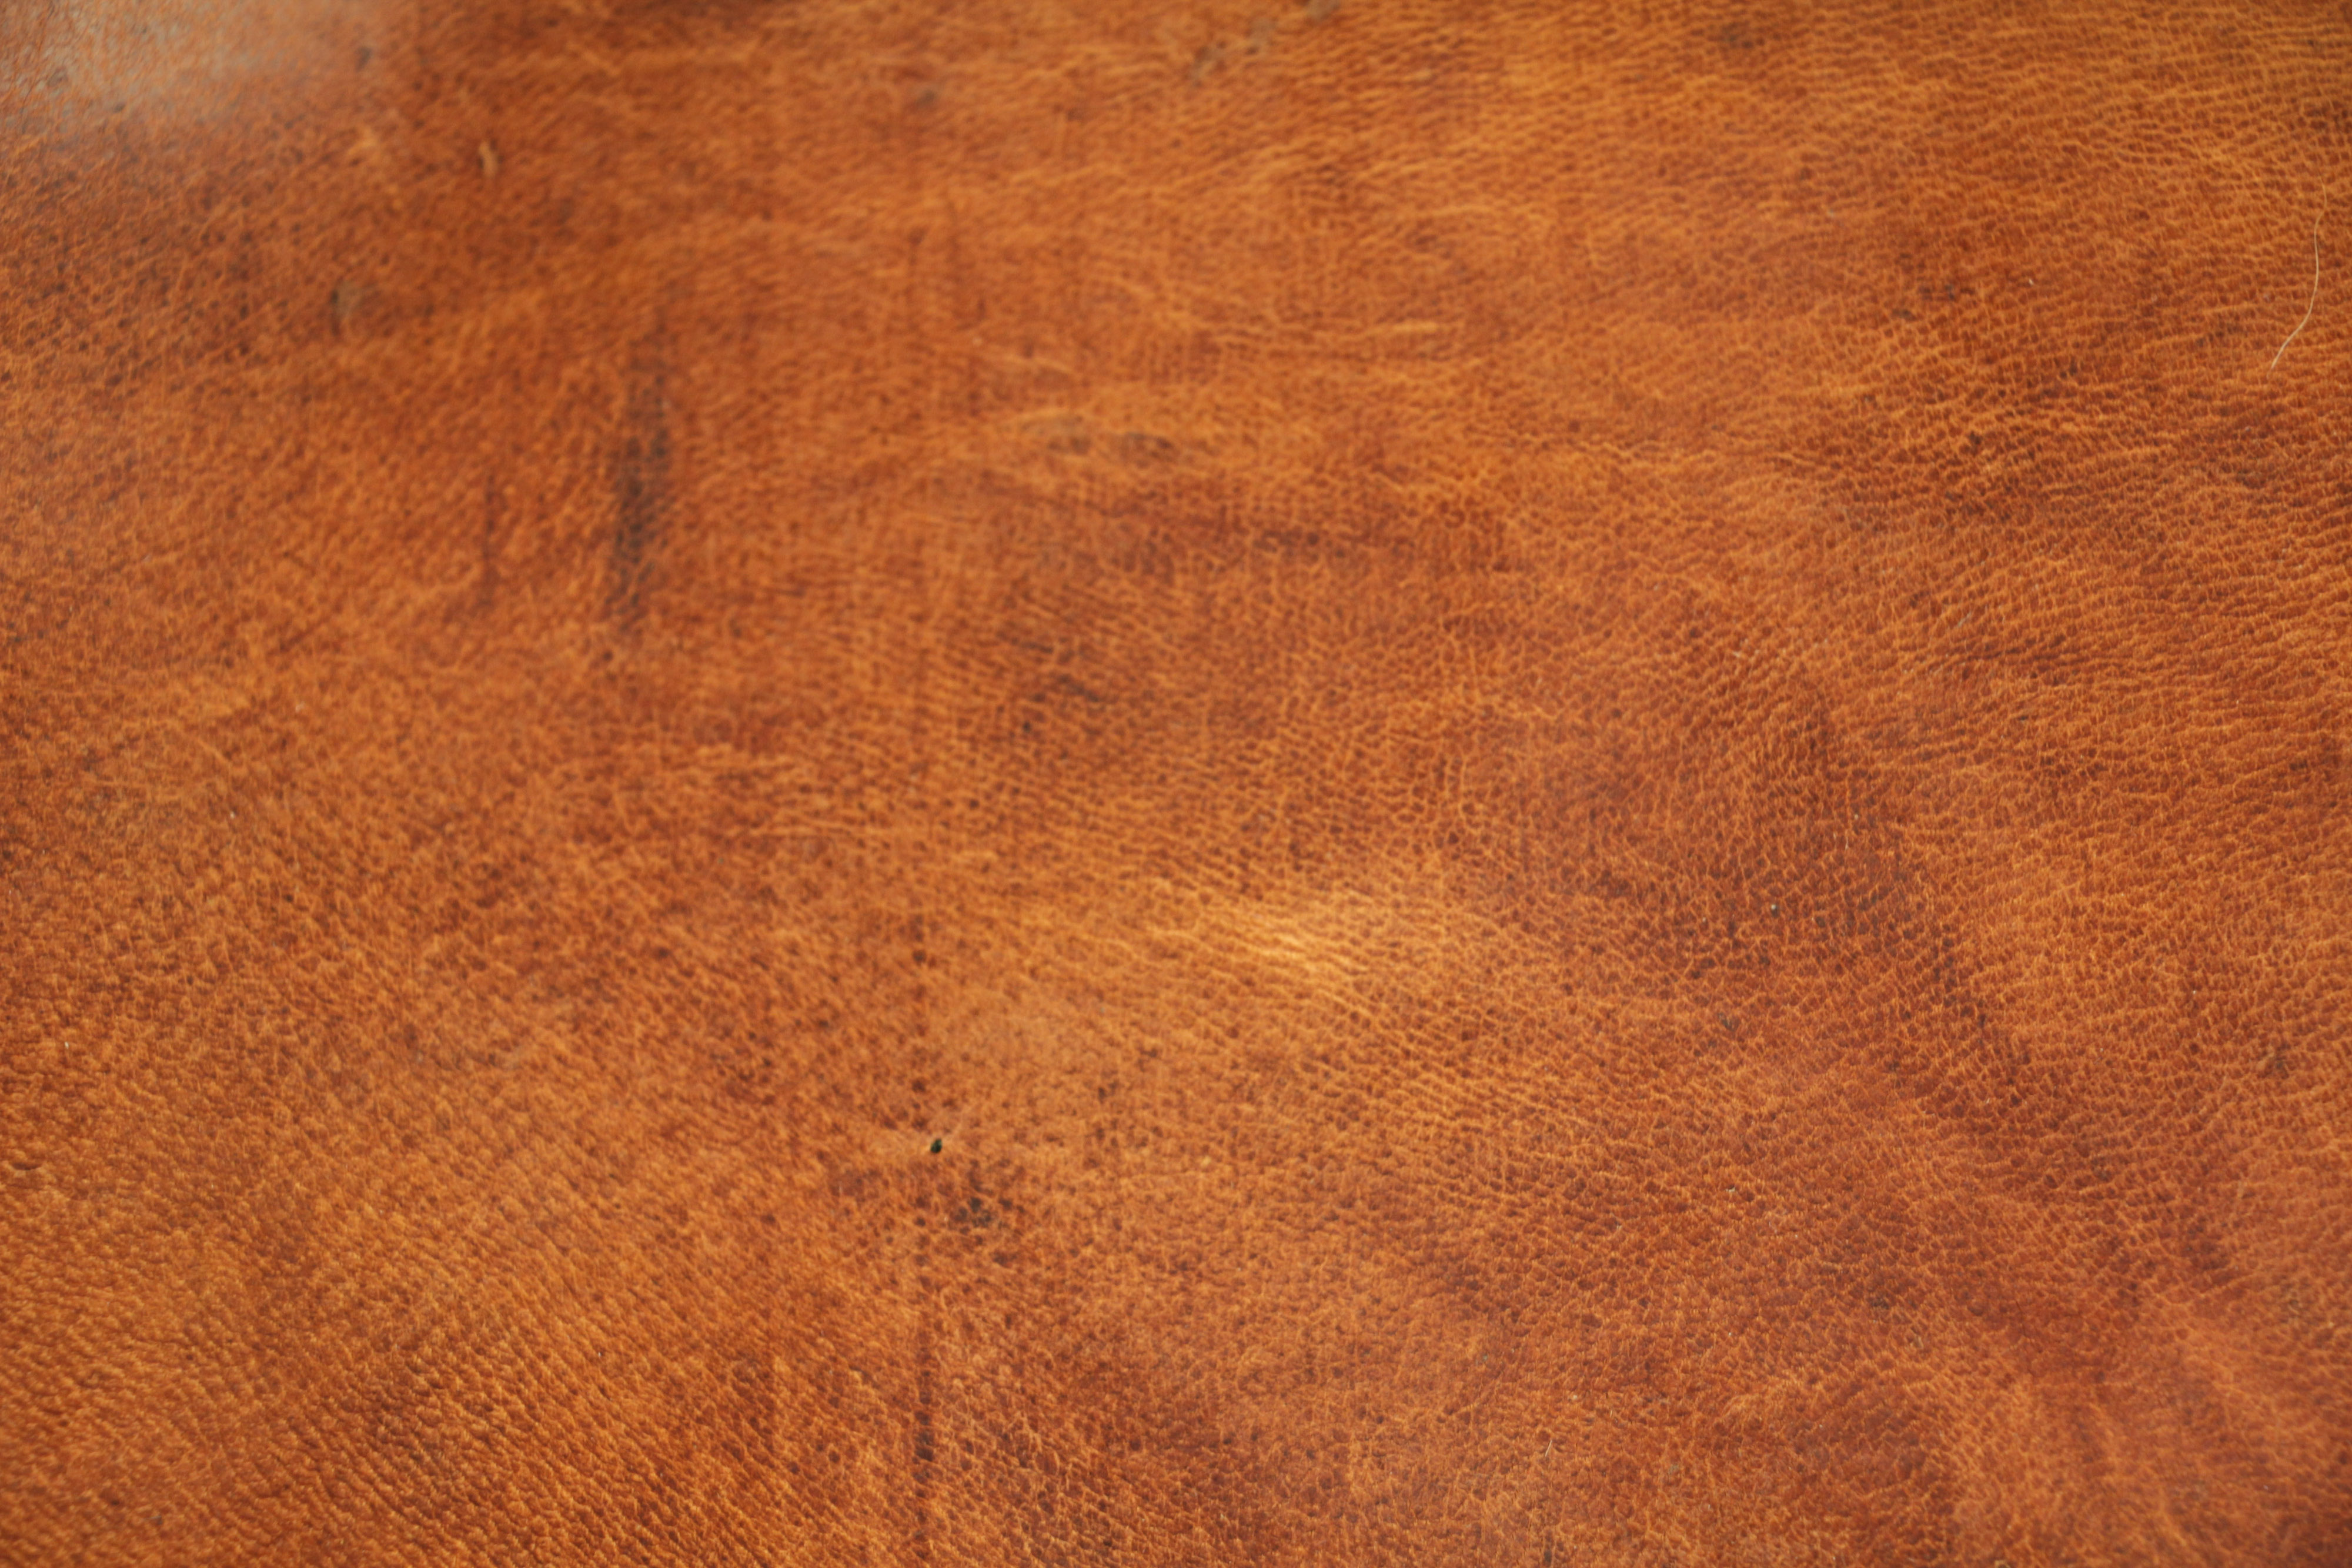 leather texture material surface orange bright smooth